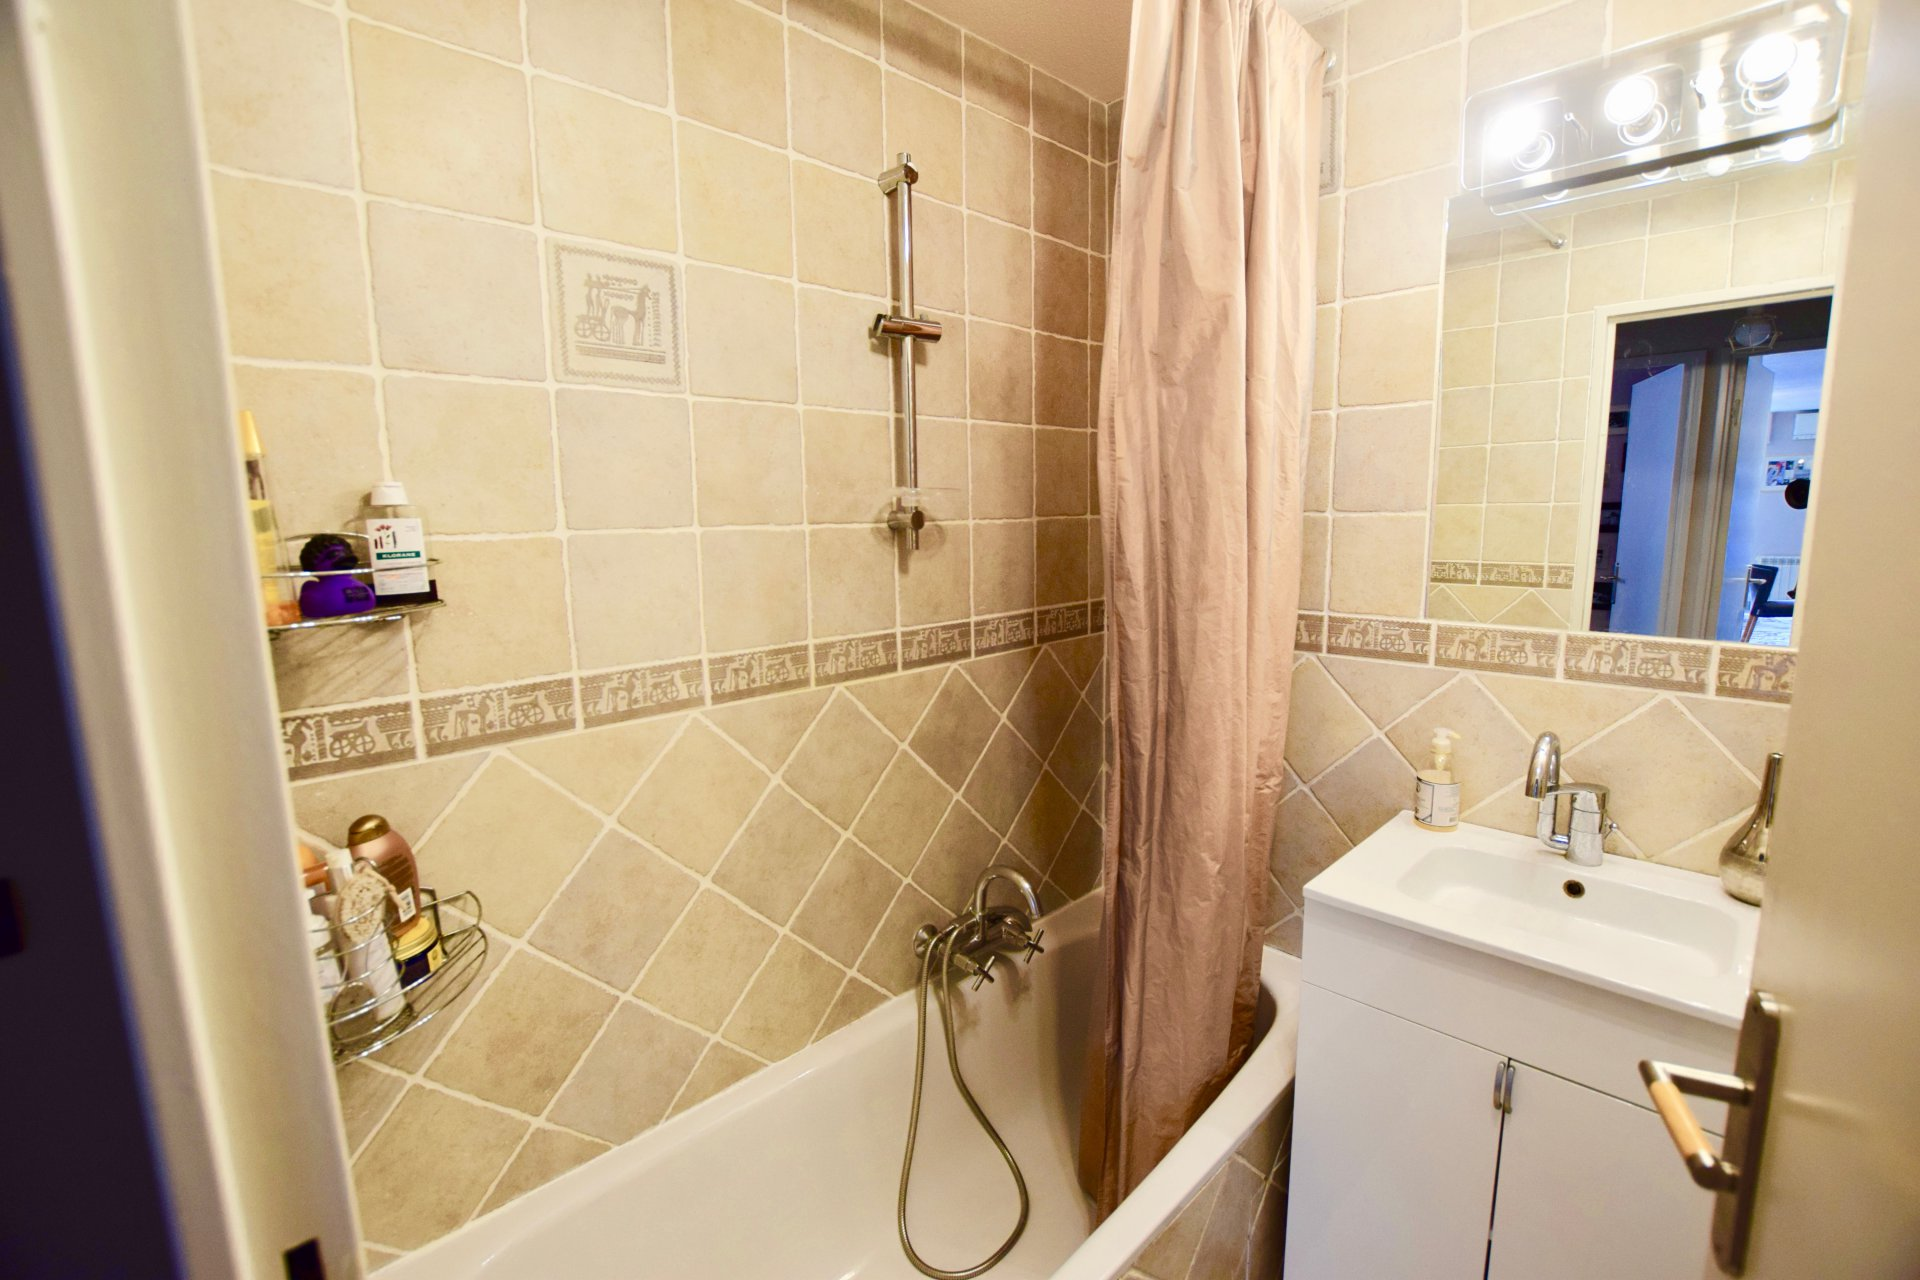 2 bedroom apartment for sale - FABRON